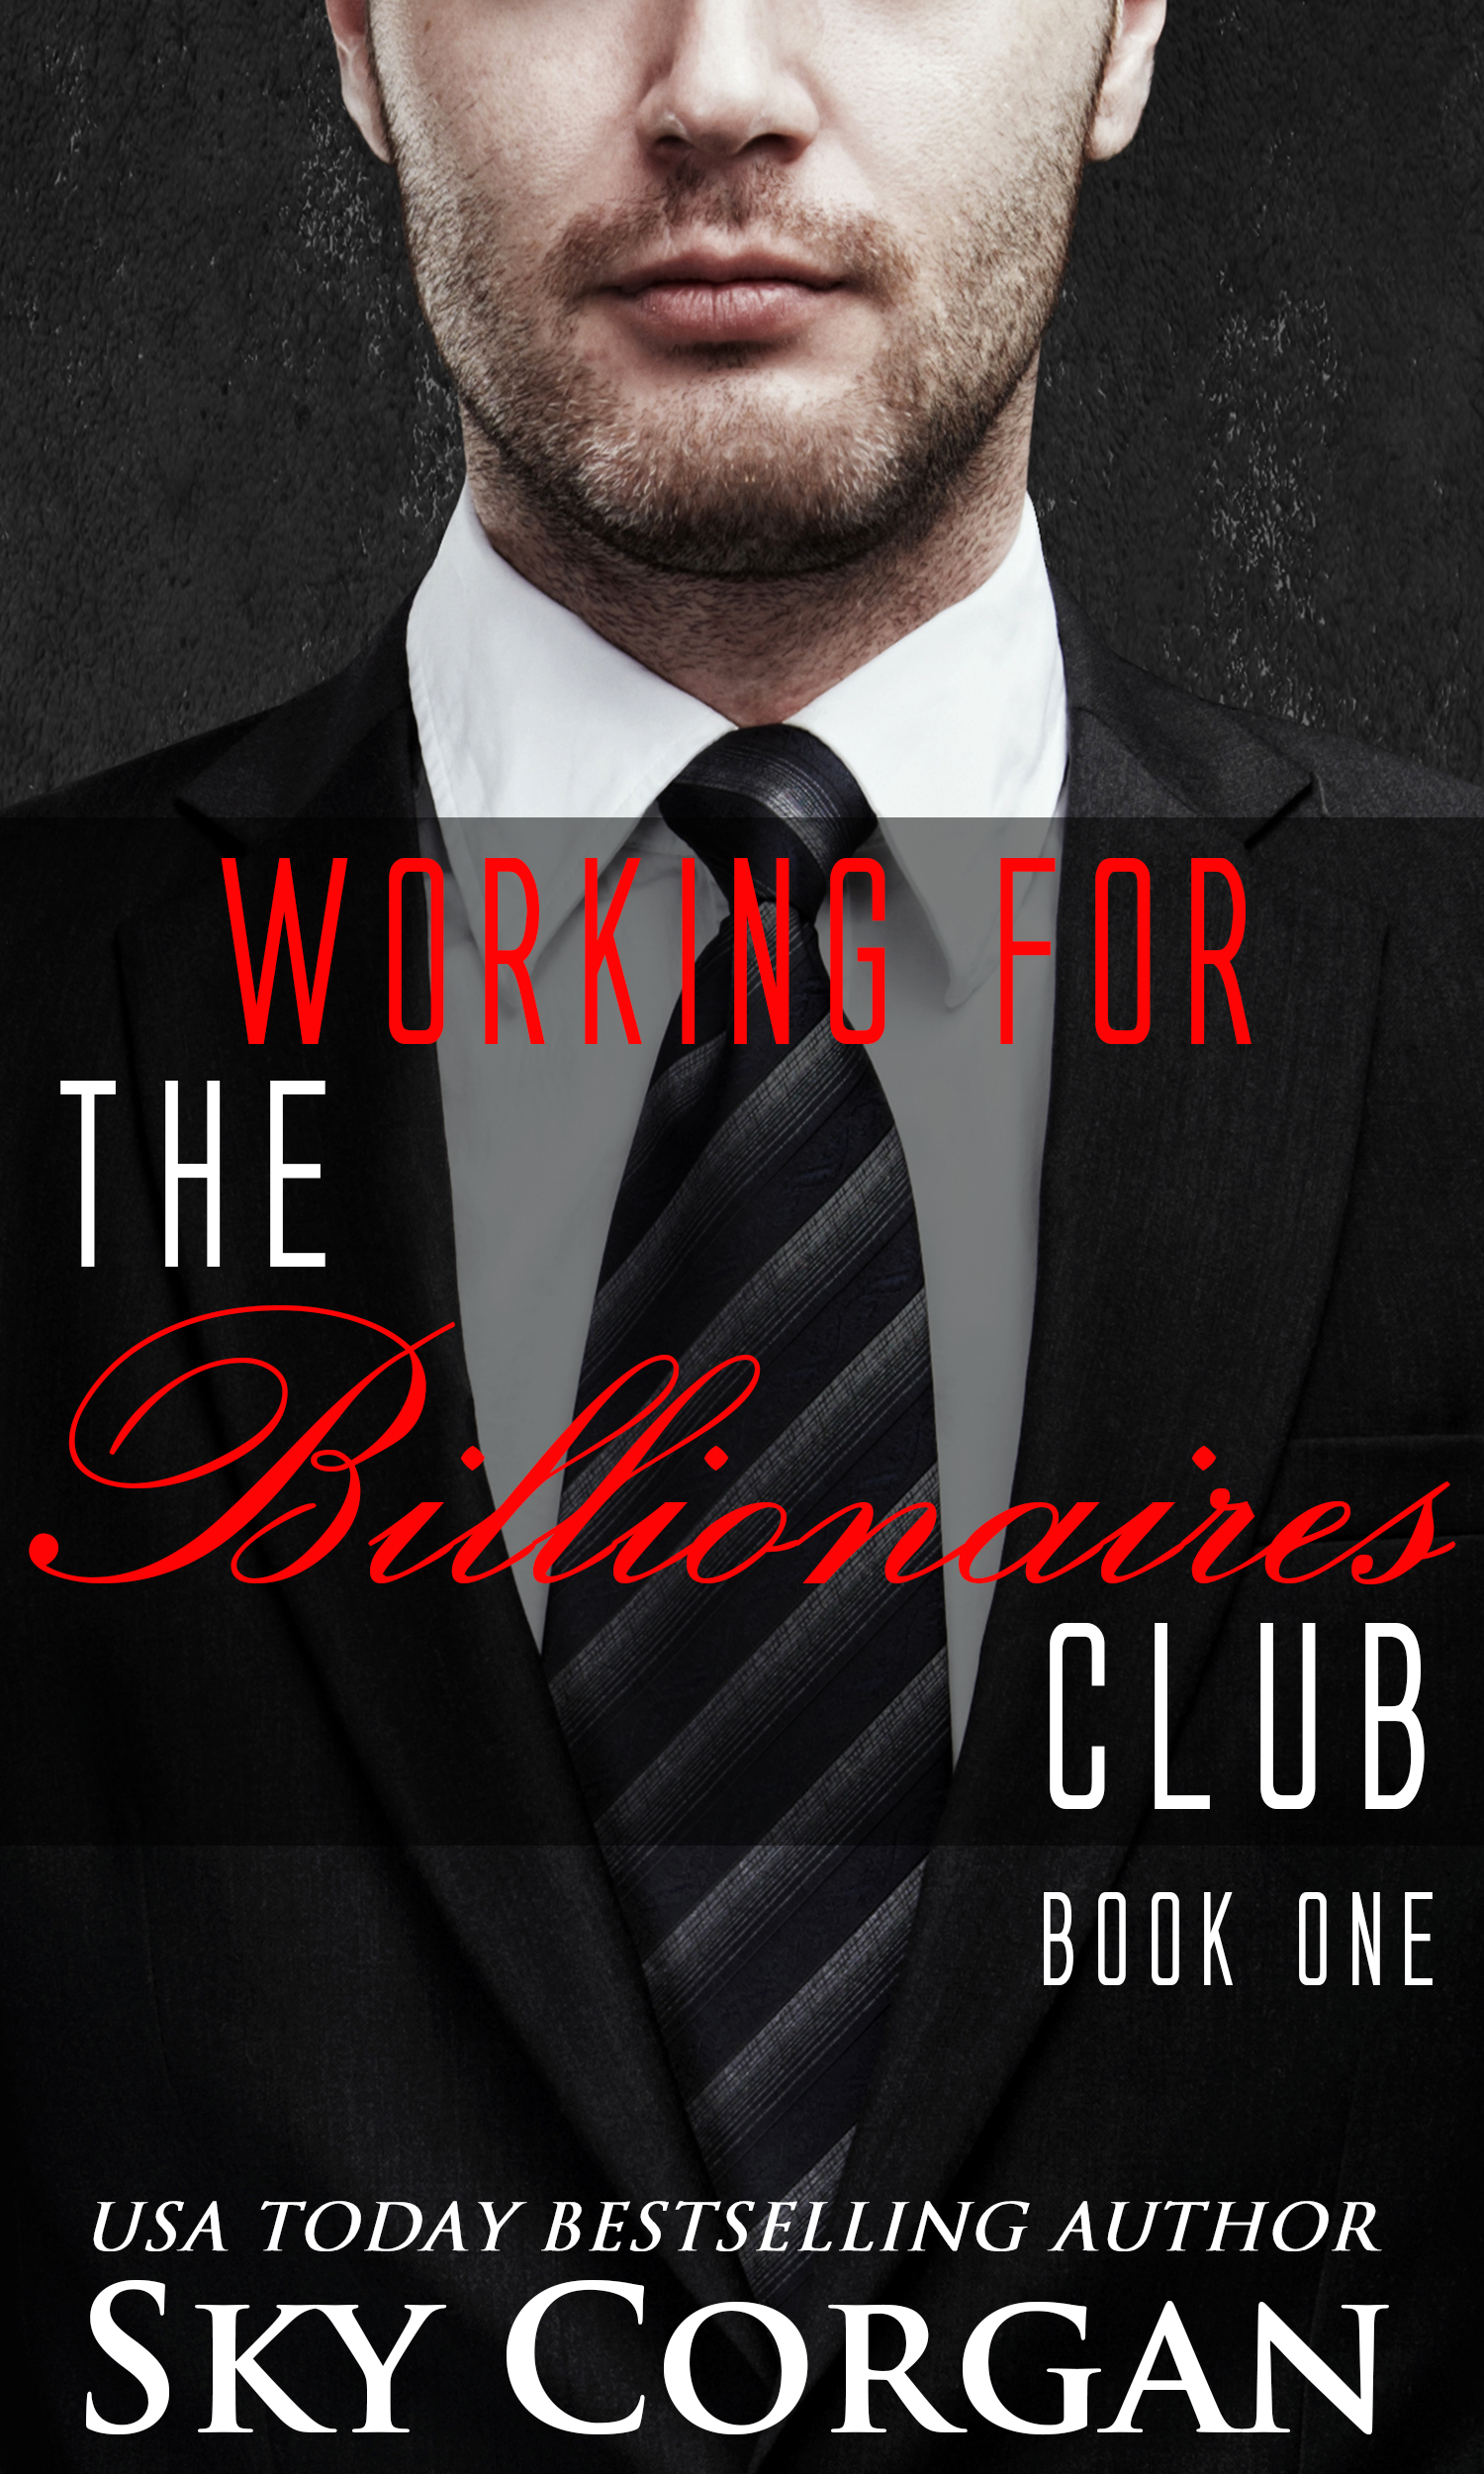 Working for the billionaires club